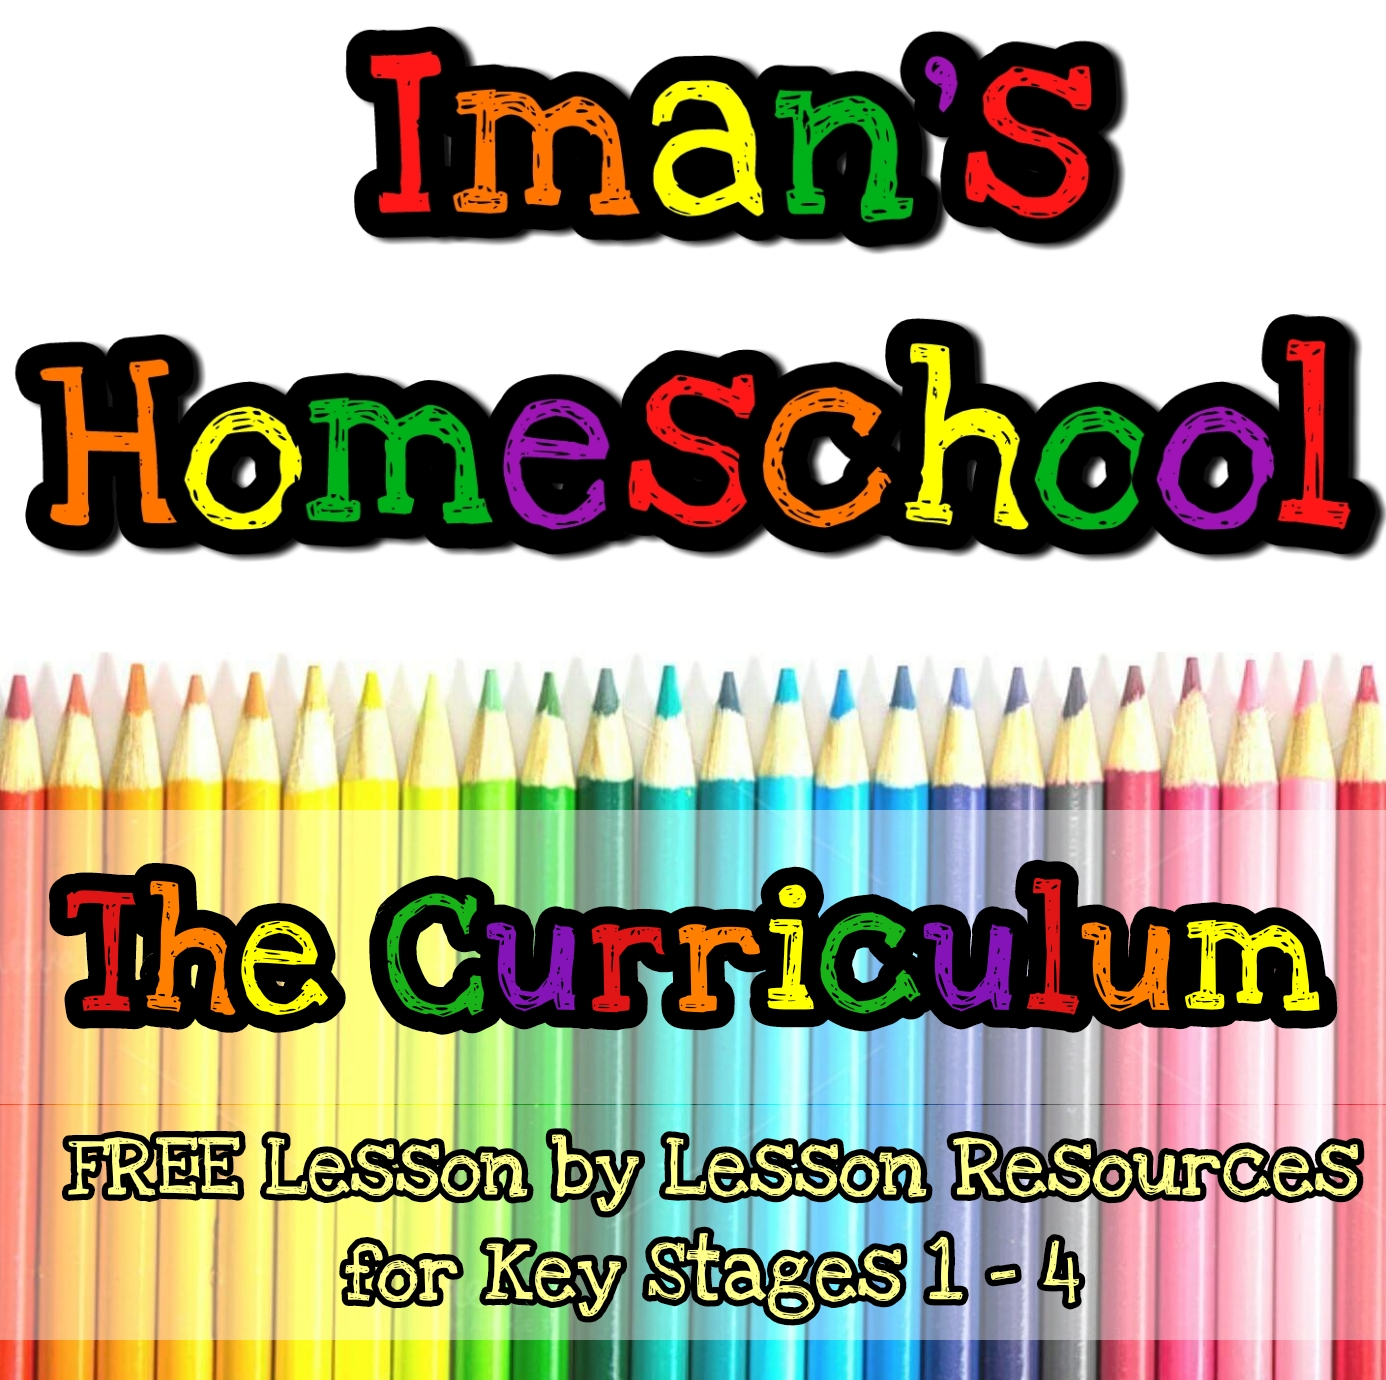 Visit Iman's Homeschool - The Curriculum